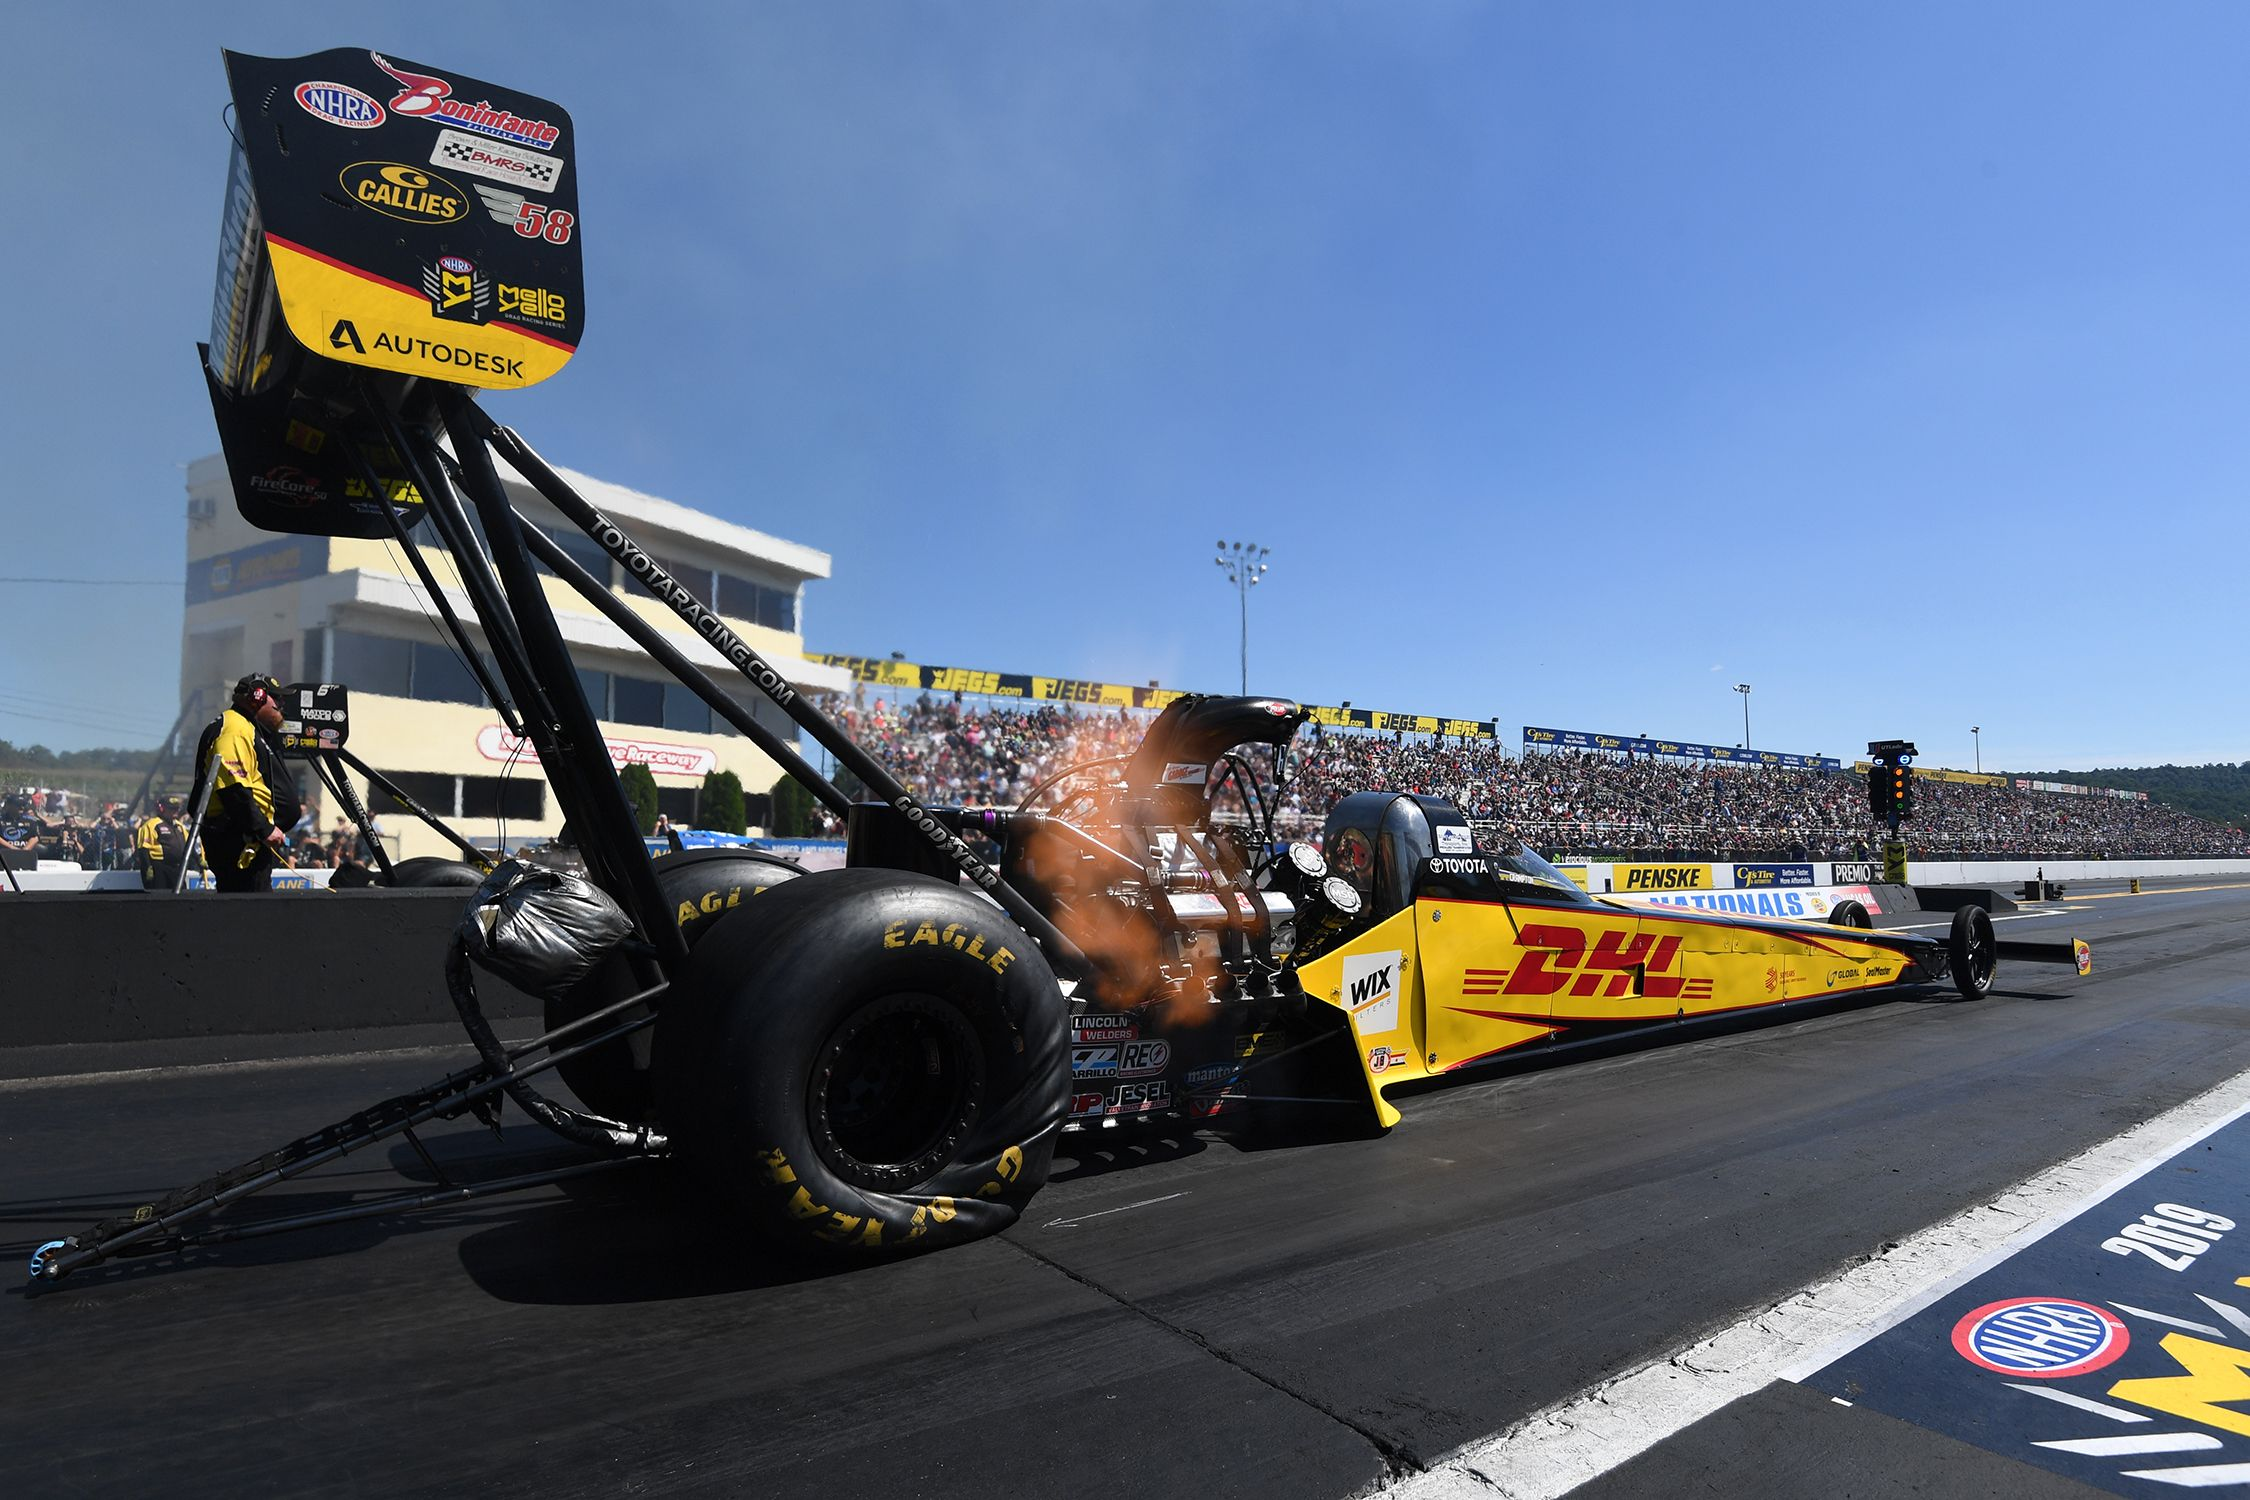 NHRA Stop Maple Grove Raceway has New Owners; Series Still Welcome